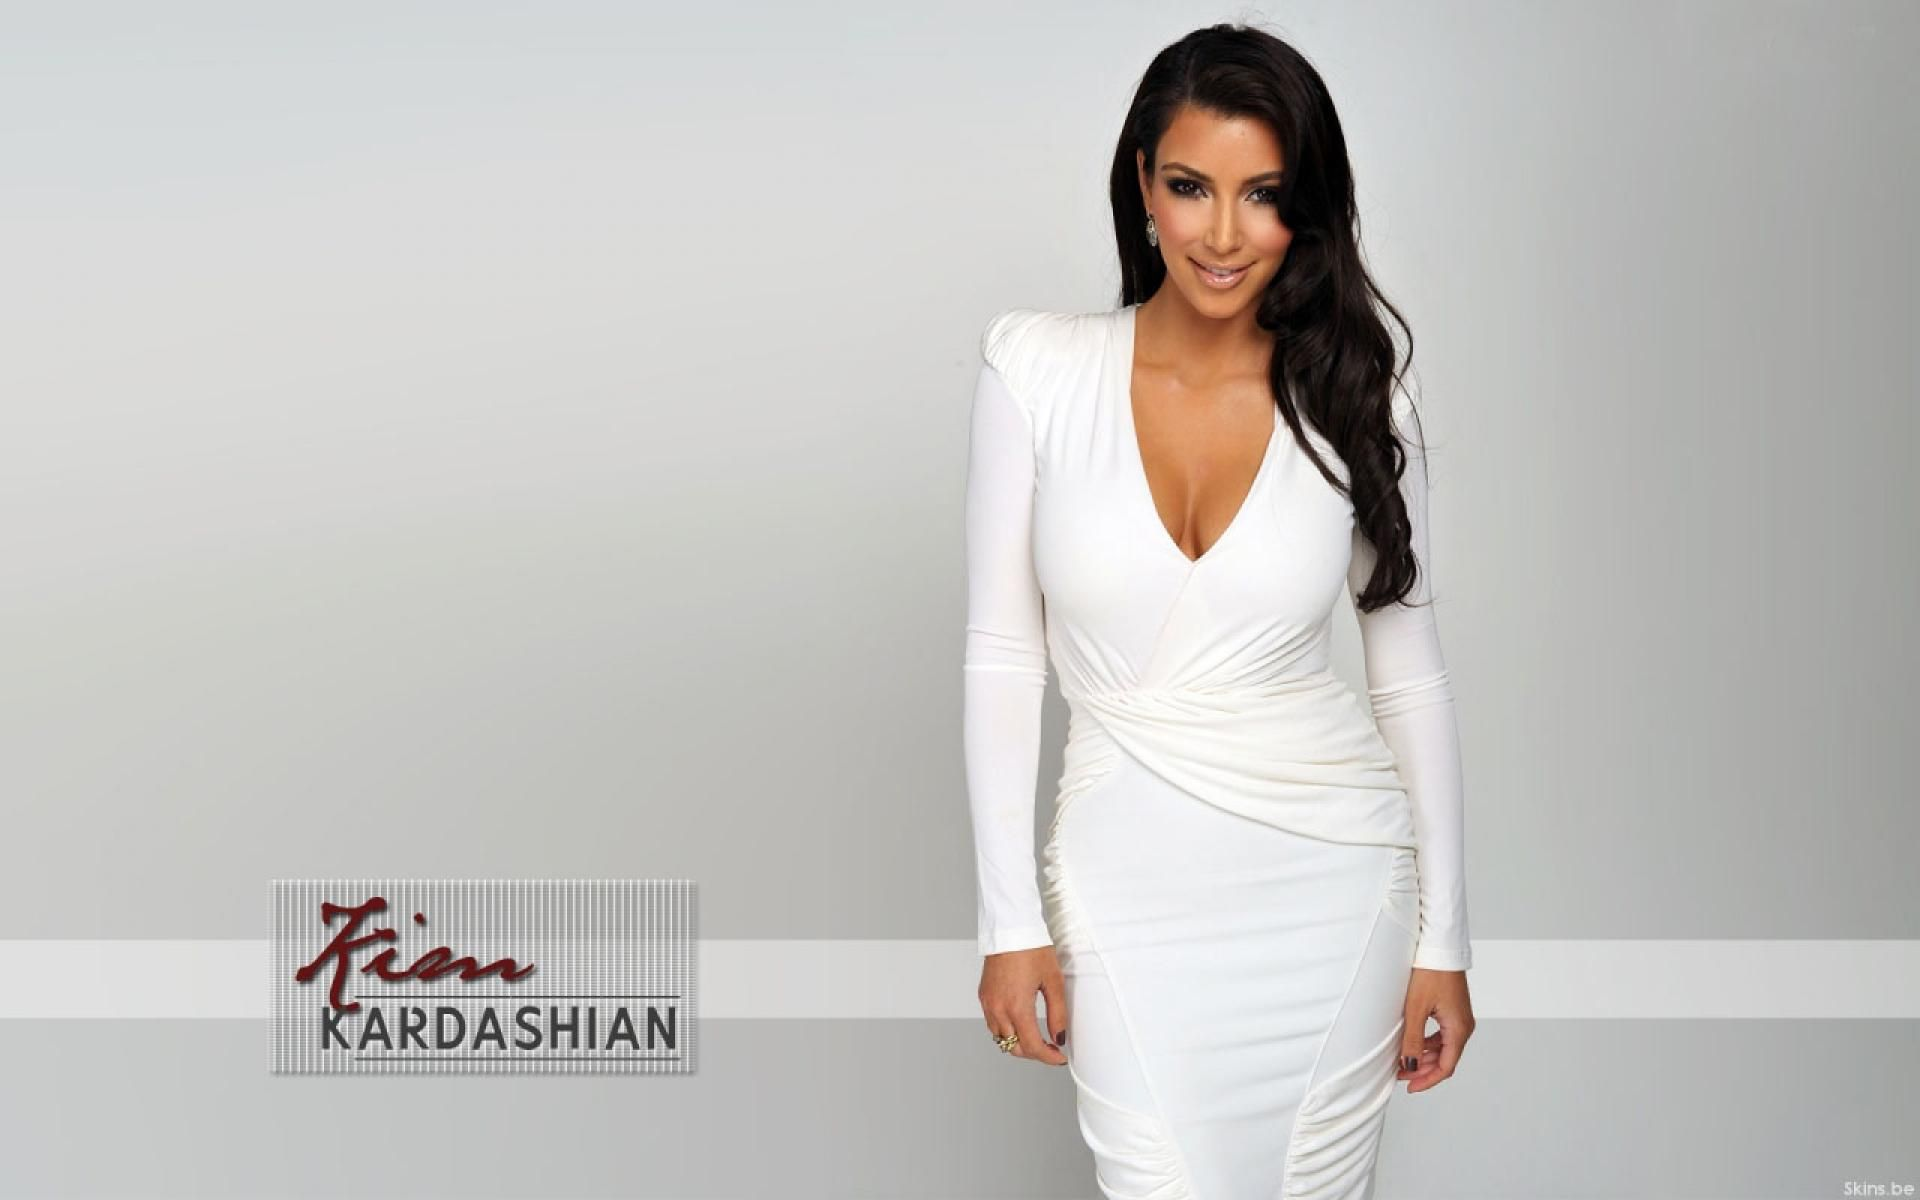 Kim Kardashian Closeup wallpapers | Kim Kardashian Closeup stock ...